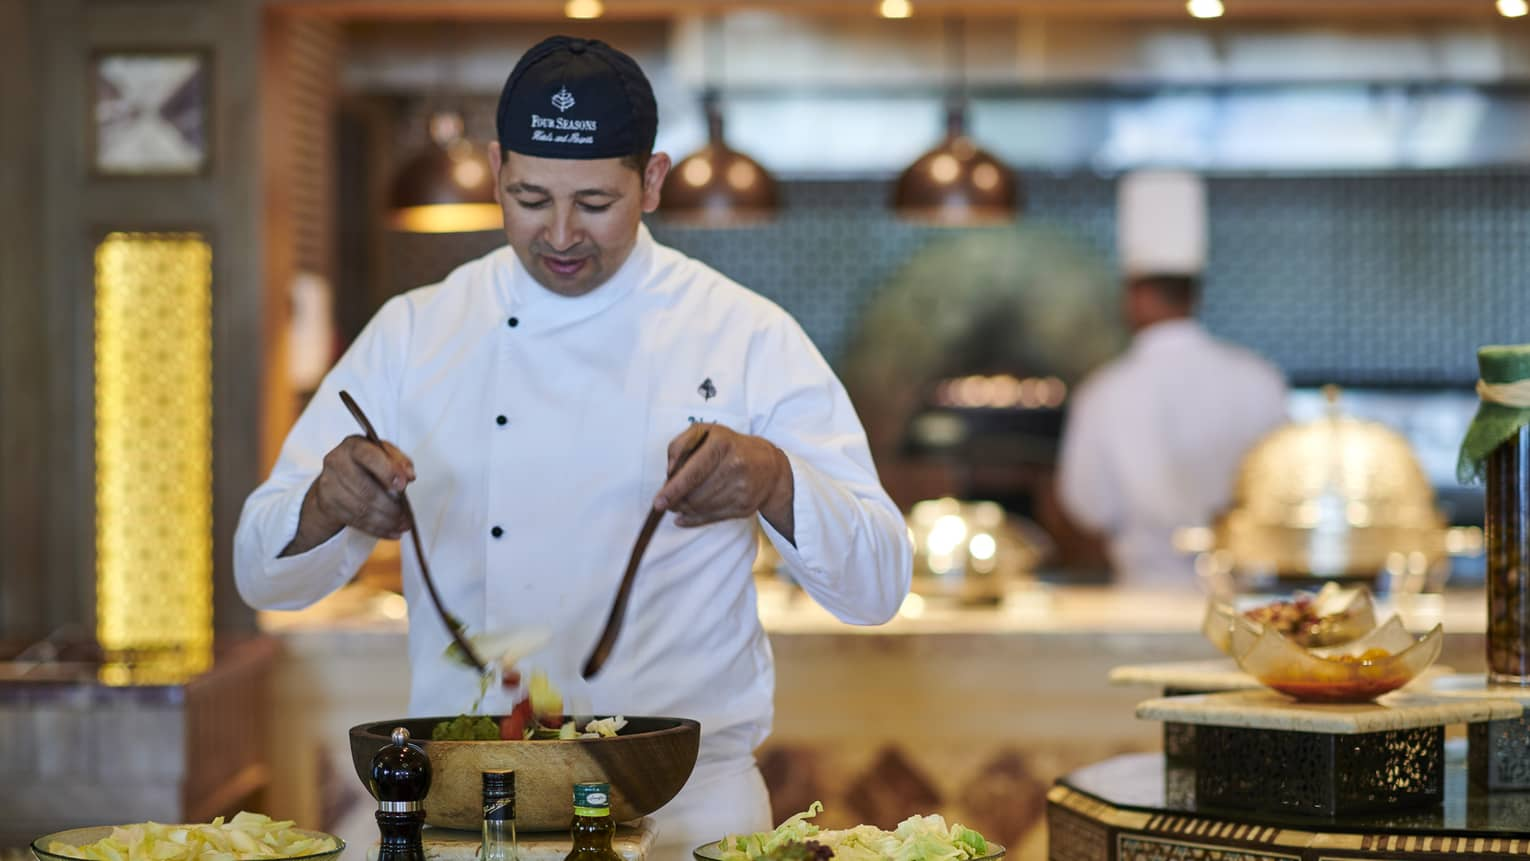 Chef tosses salad at buffet station with chopped vegetables in bowls